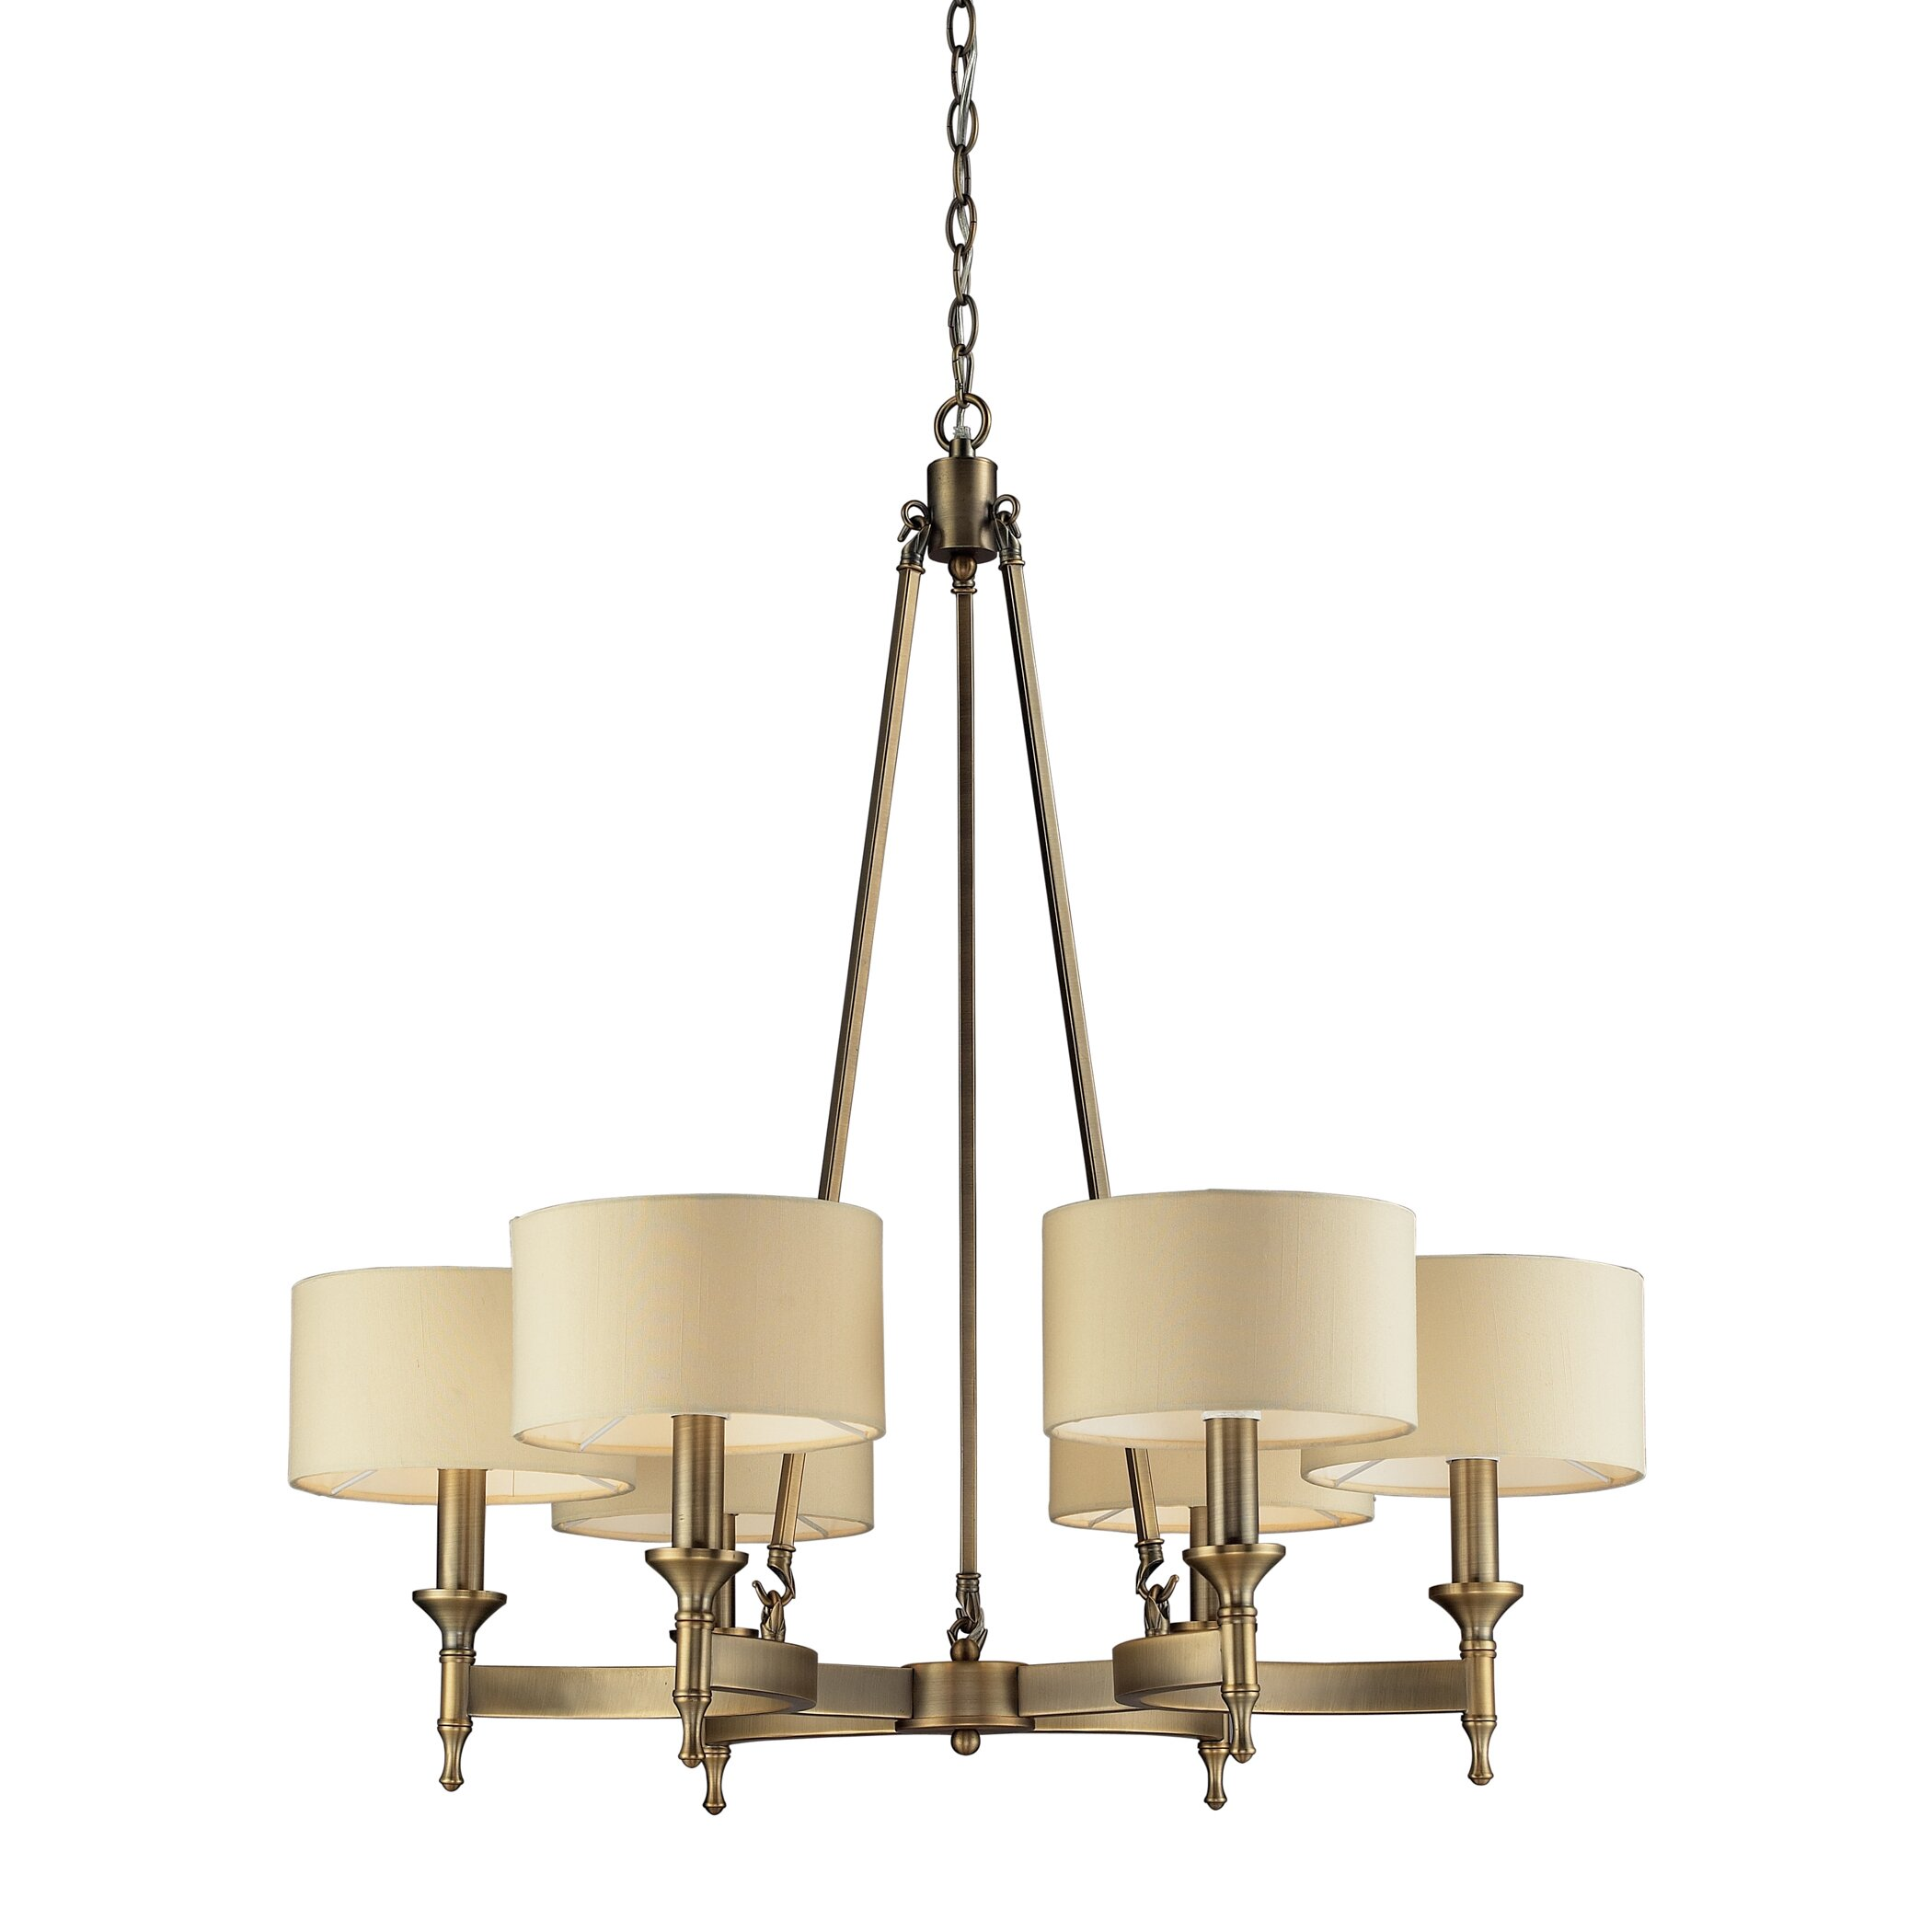 Wayfair Lights: 6 Light Chandelier